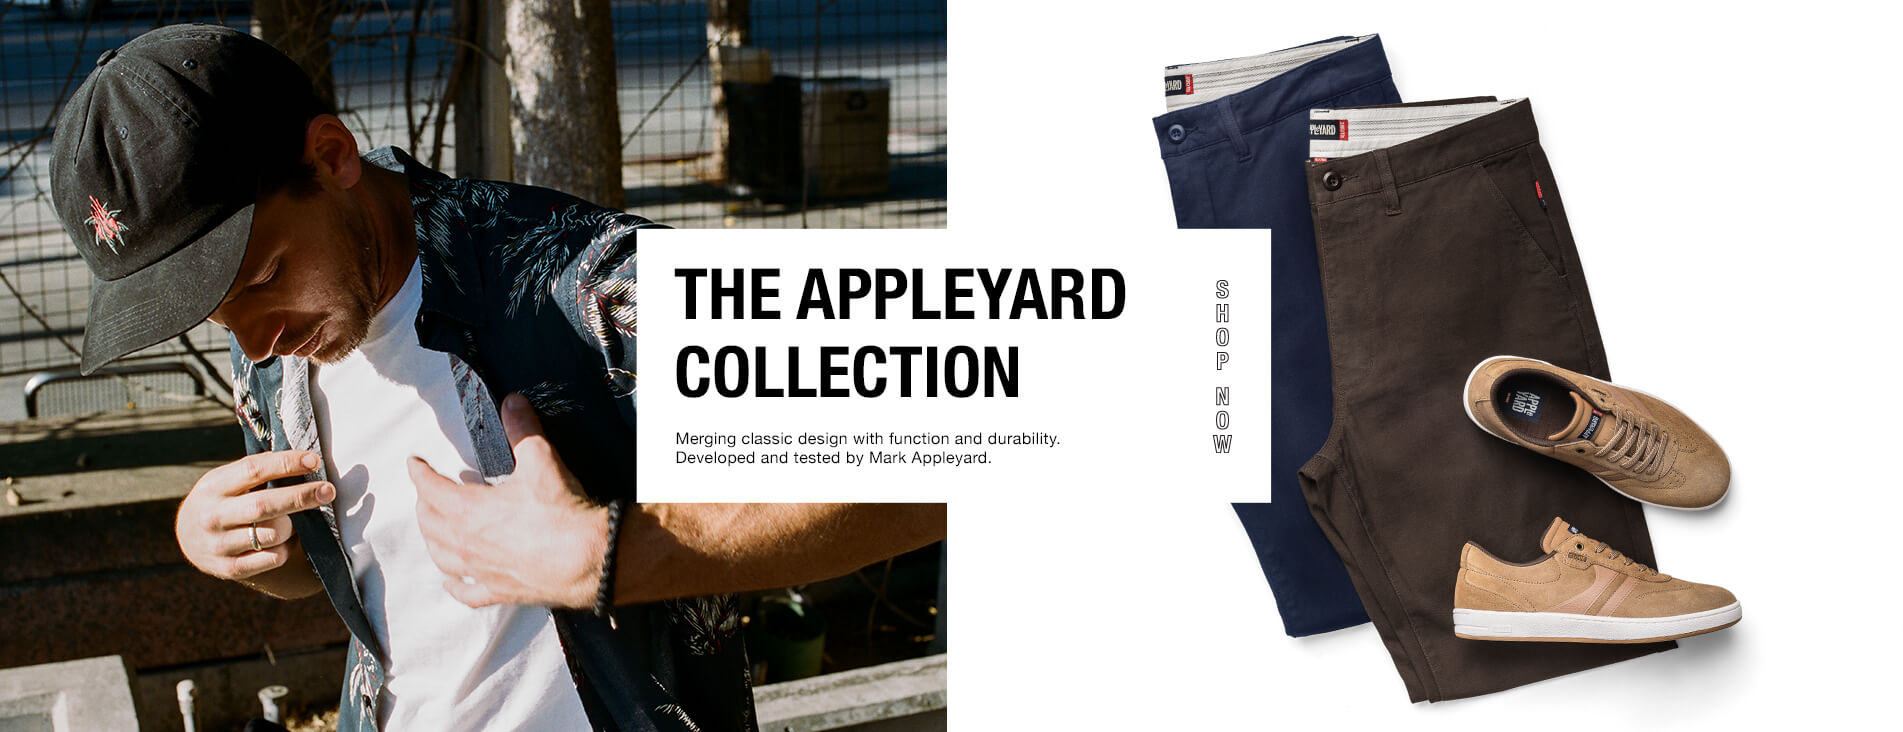 THE APPLEYARD COLLECTION